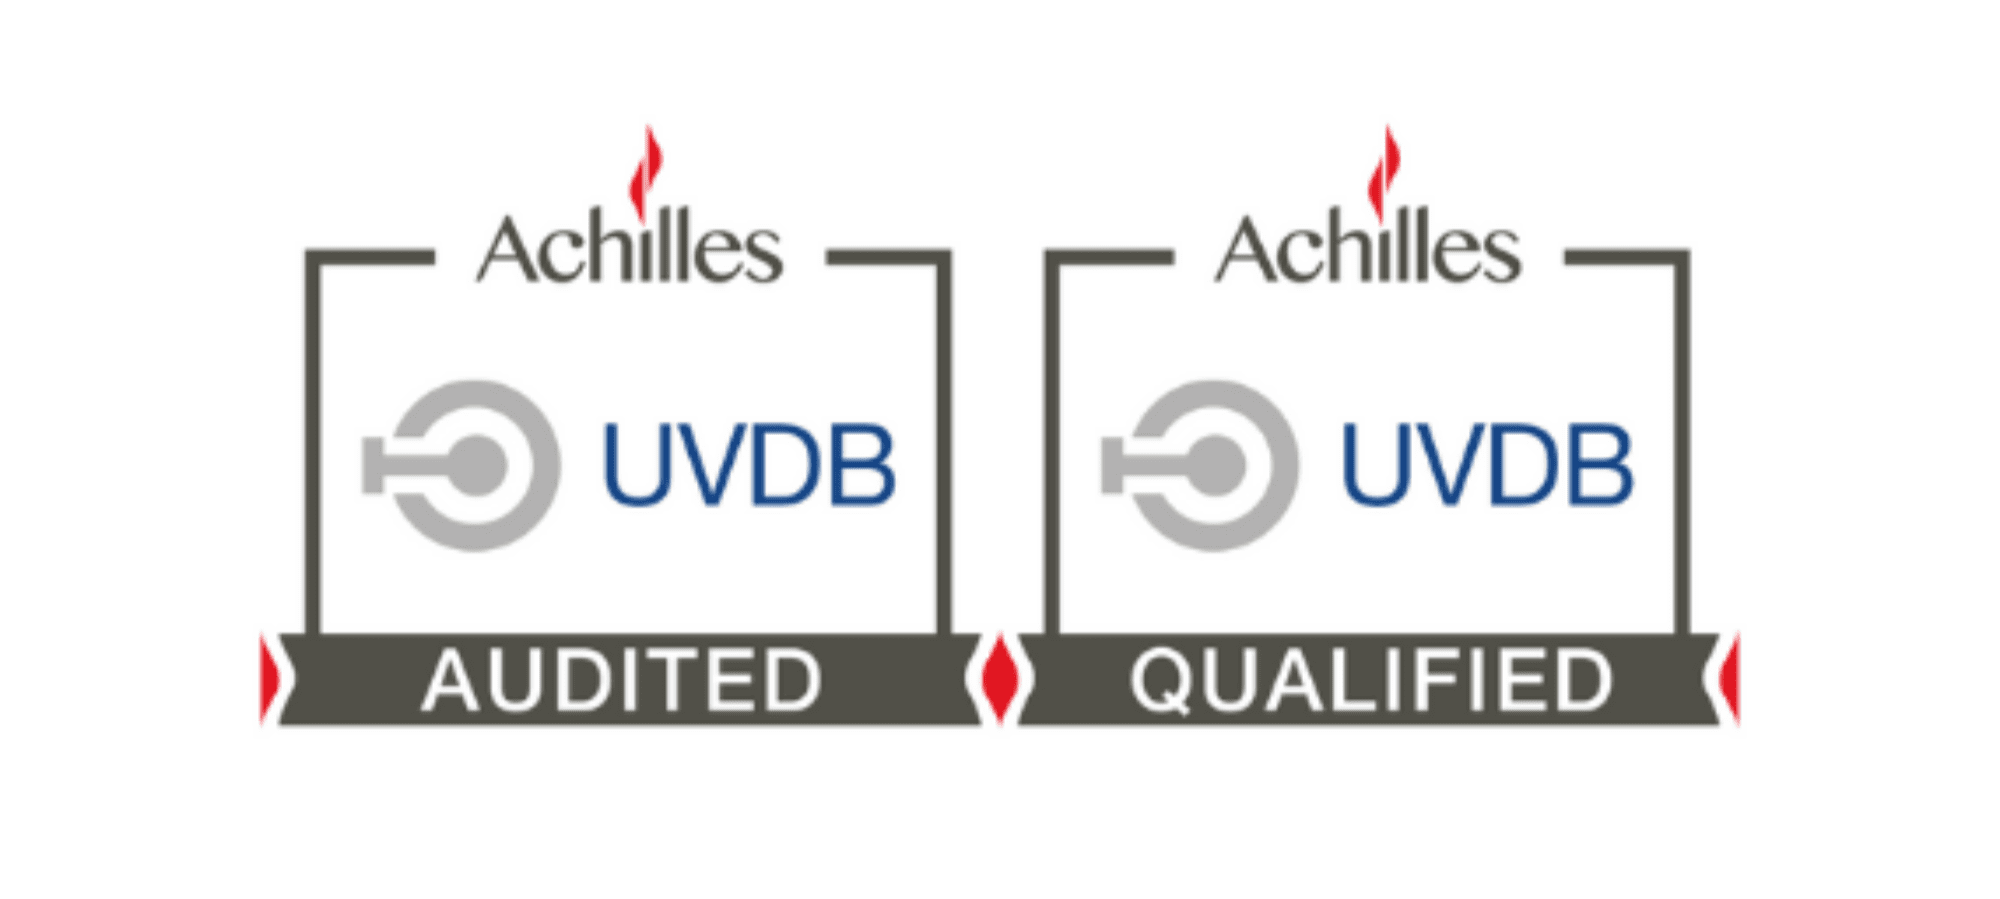 Achilles UVDB Verify Category C and NCE Utilities